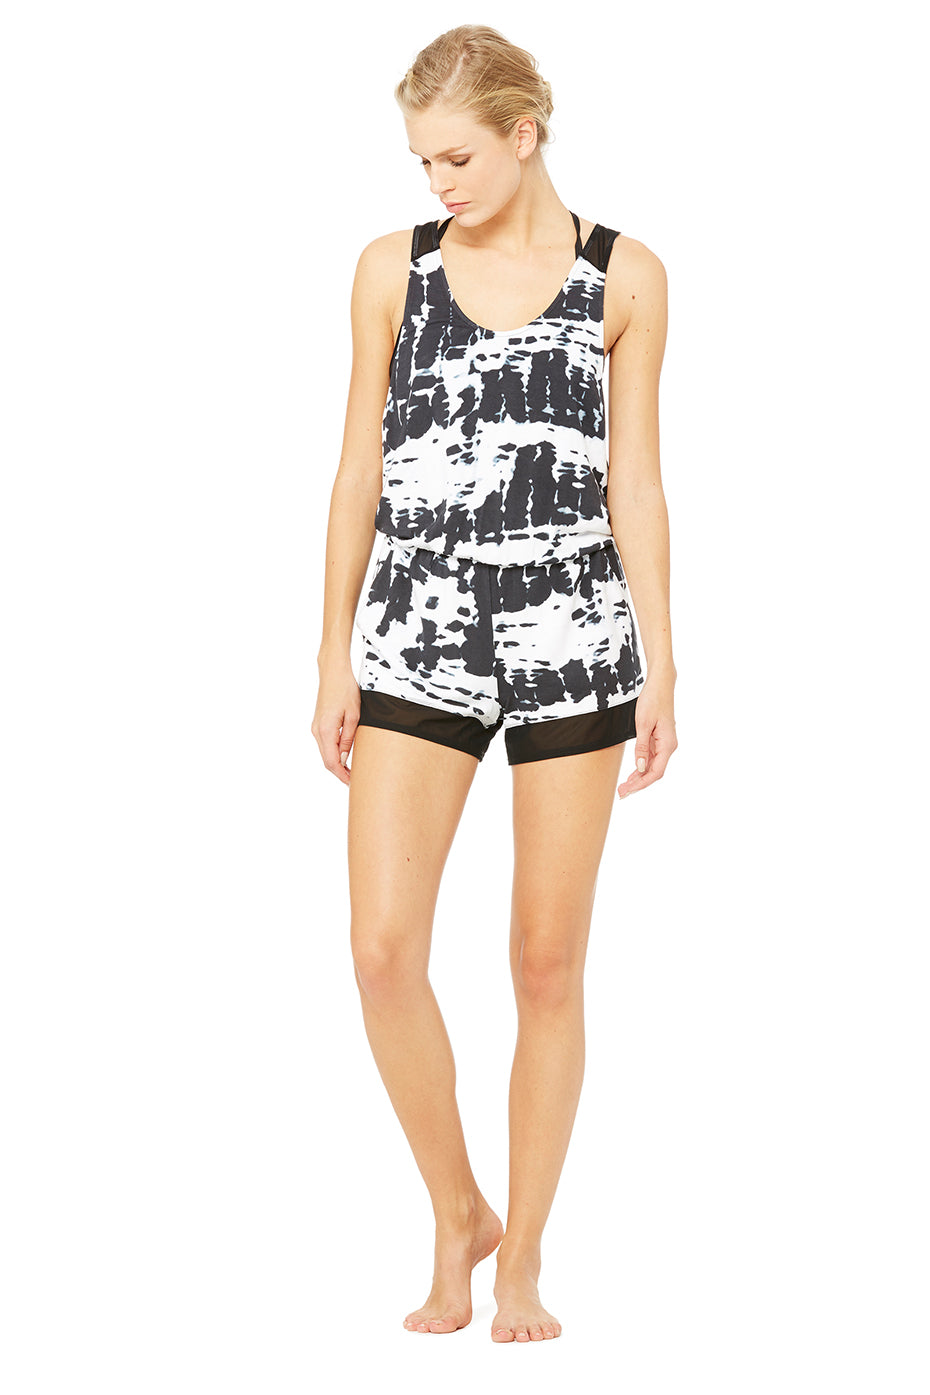 Tranquility Romper